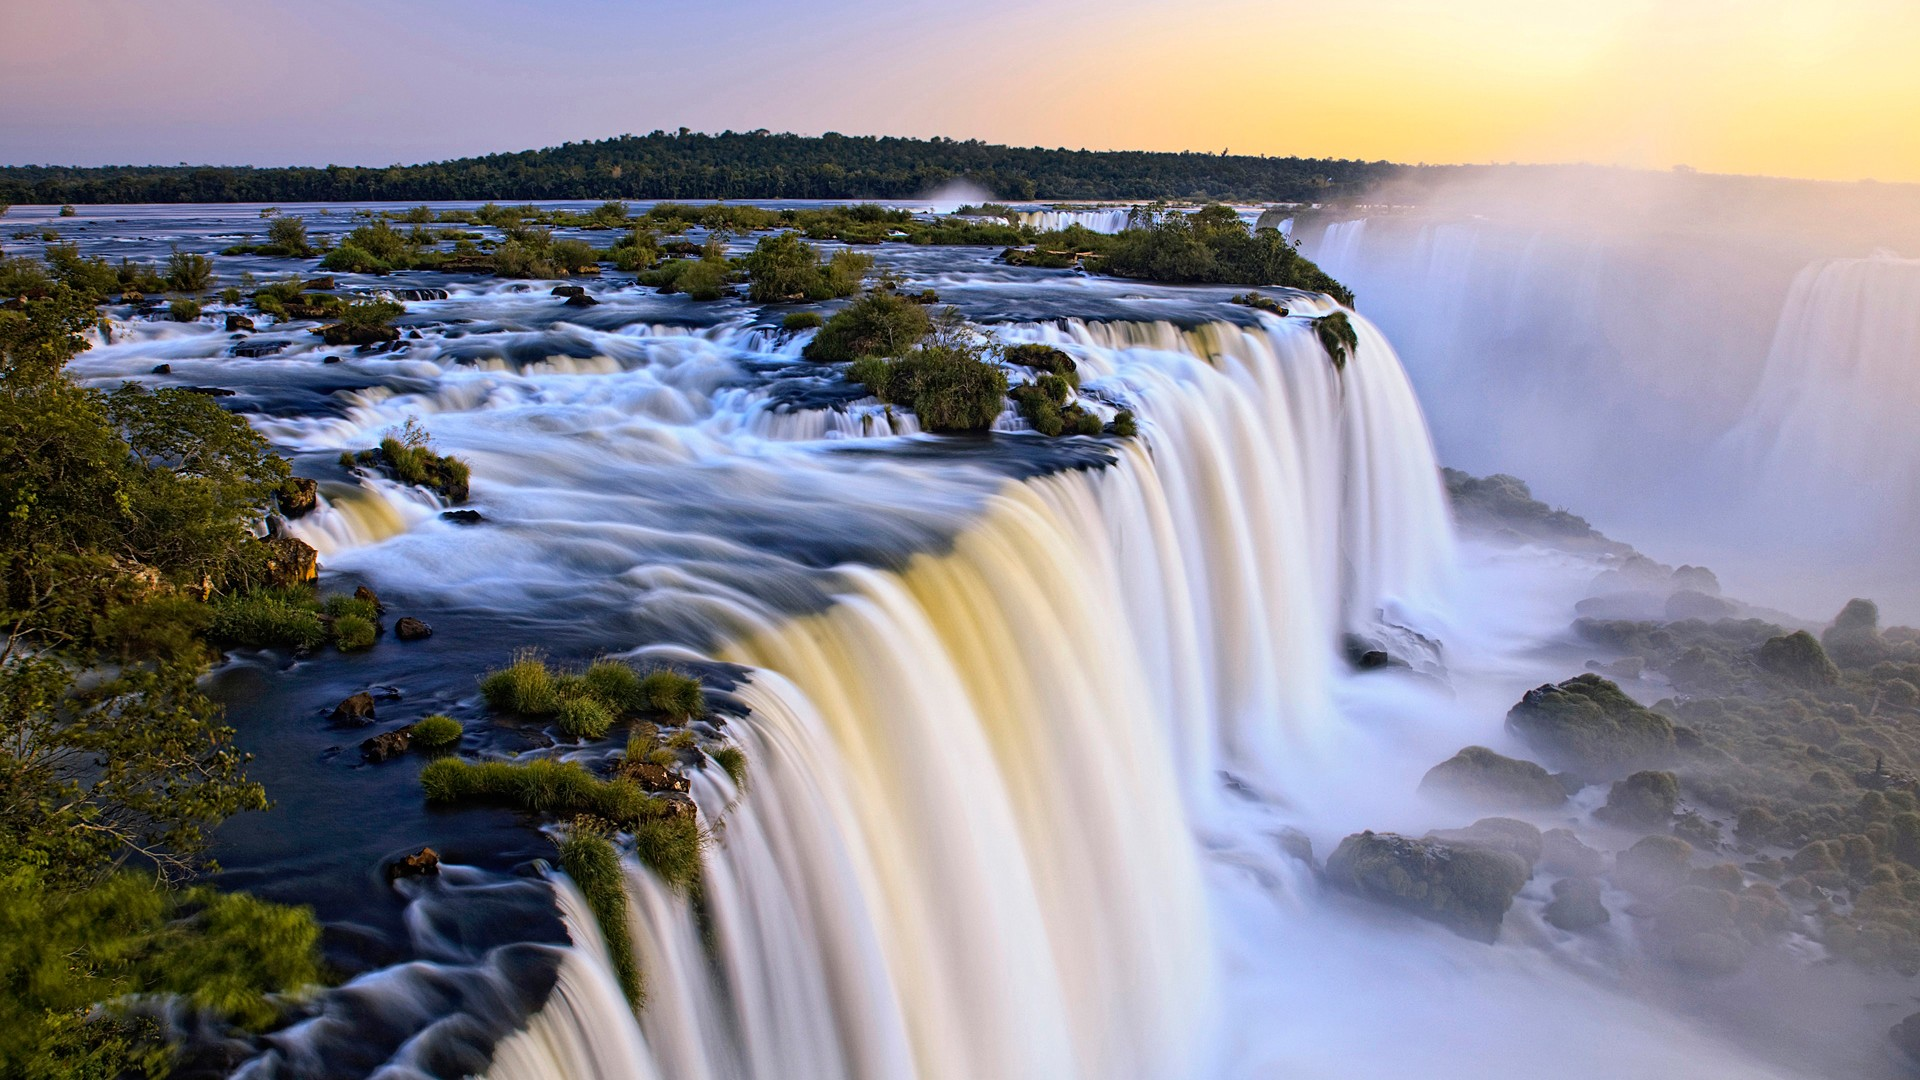 brazilian iguazu water falls wallpaper latest image free download